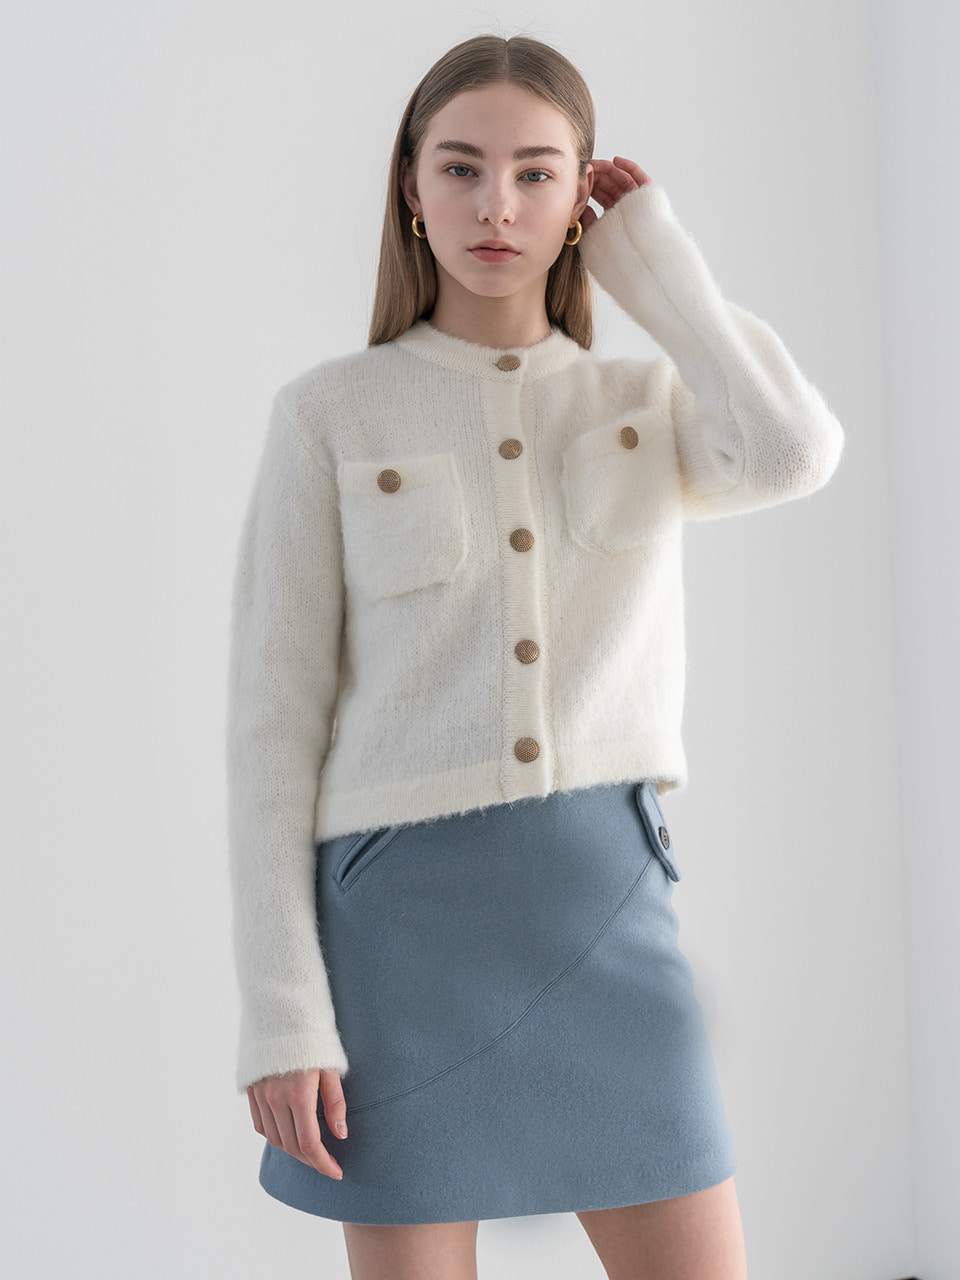 Brushed mohair wool cardigan in ivory